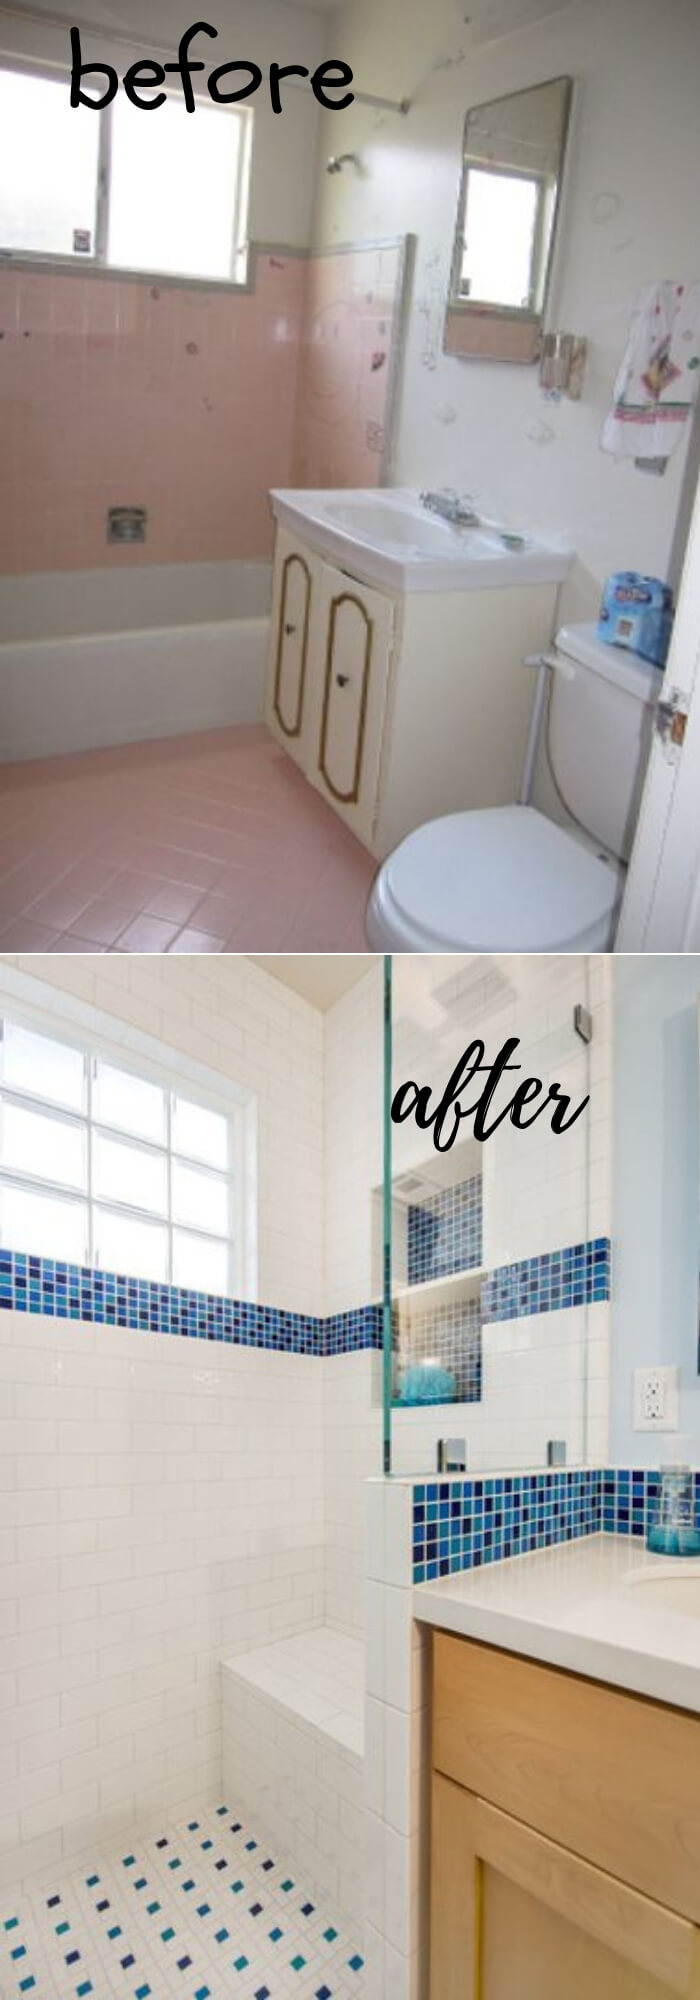 Upgrade a Small Bathroom (Glass block windows, Starphire glass shower panes and bright white and blue tile)